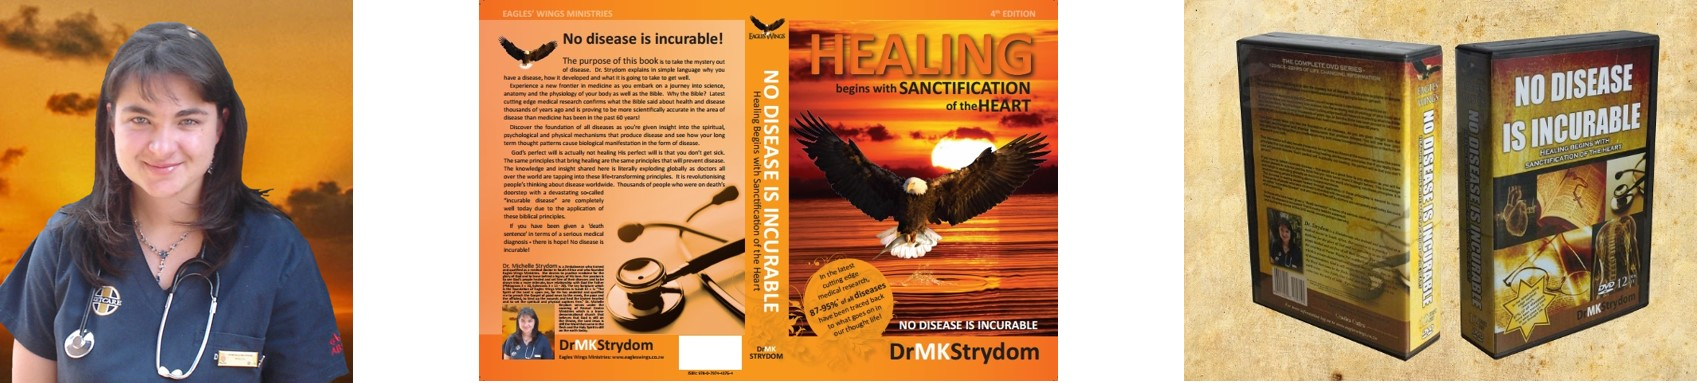 Healing begins with sanctification of the heart